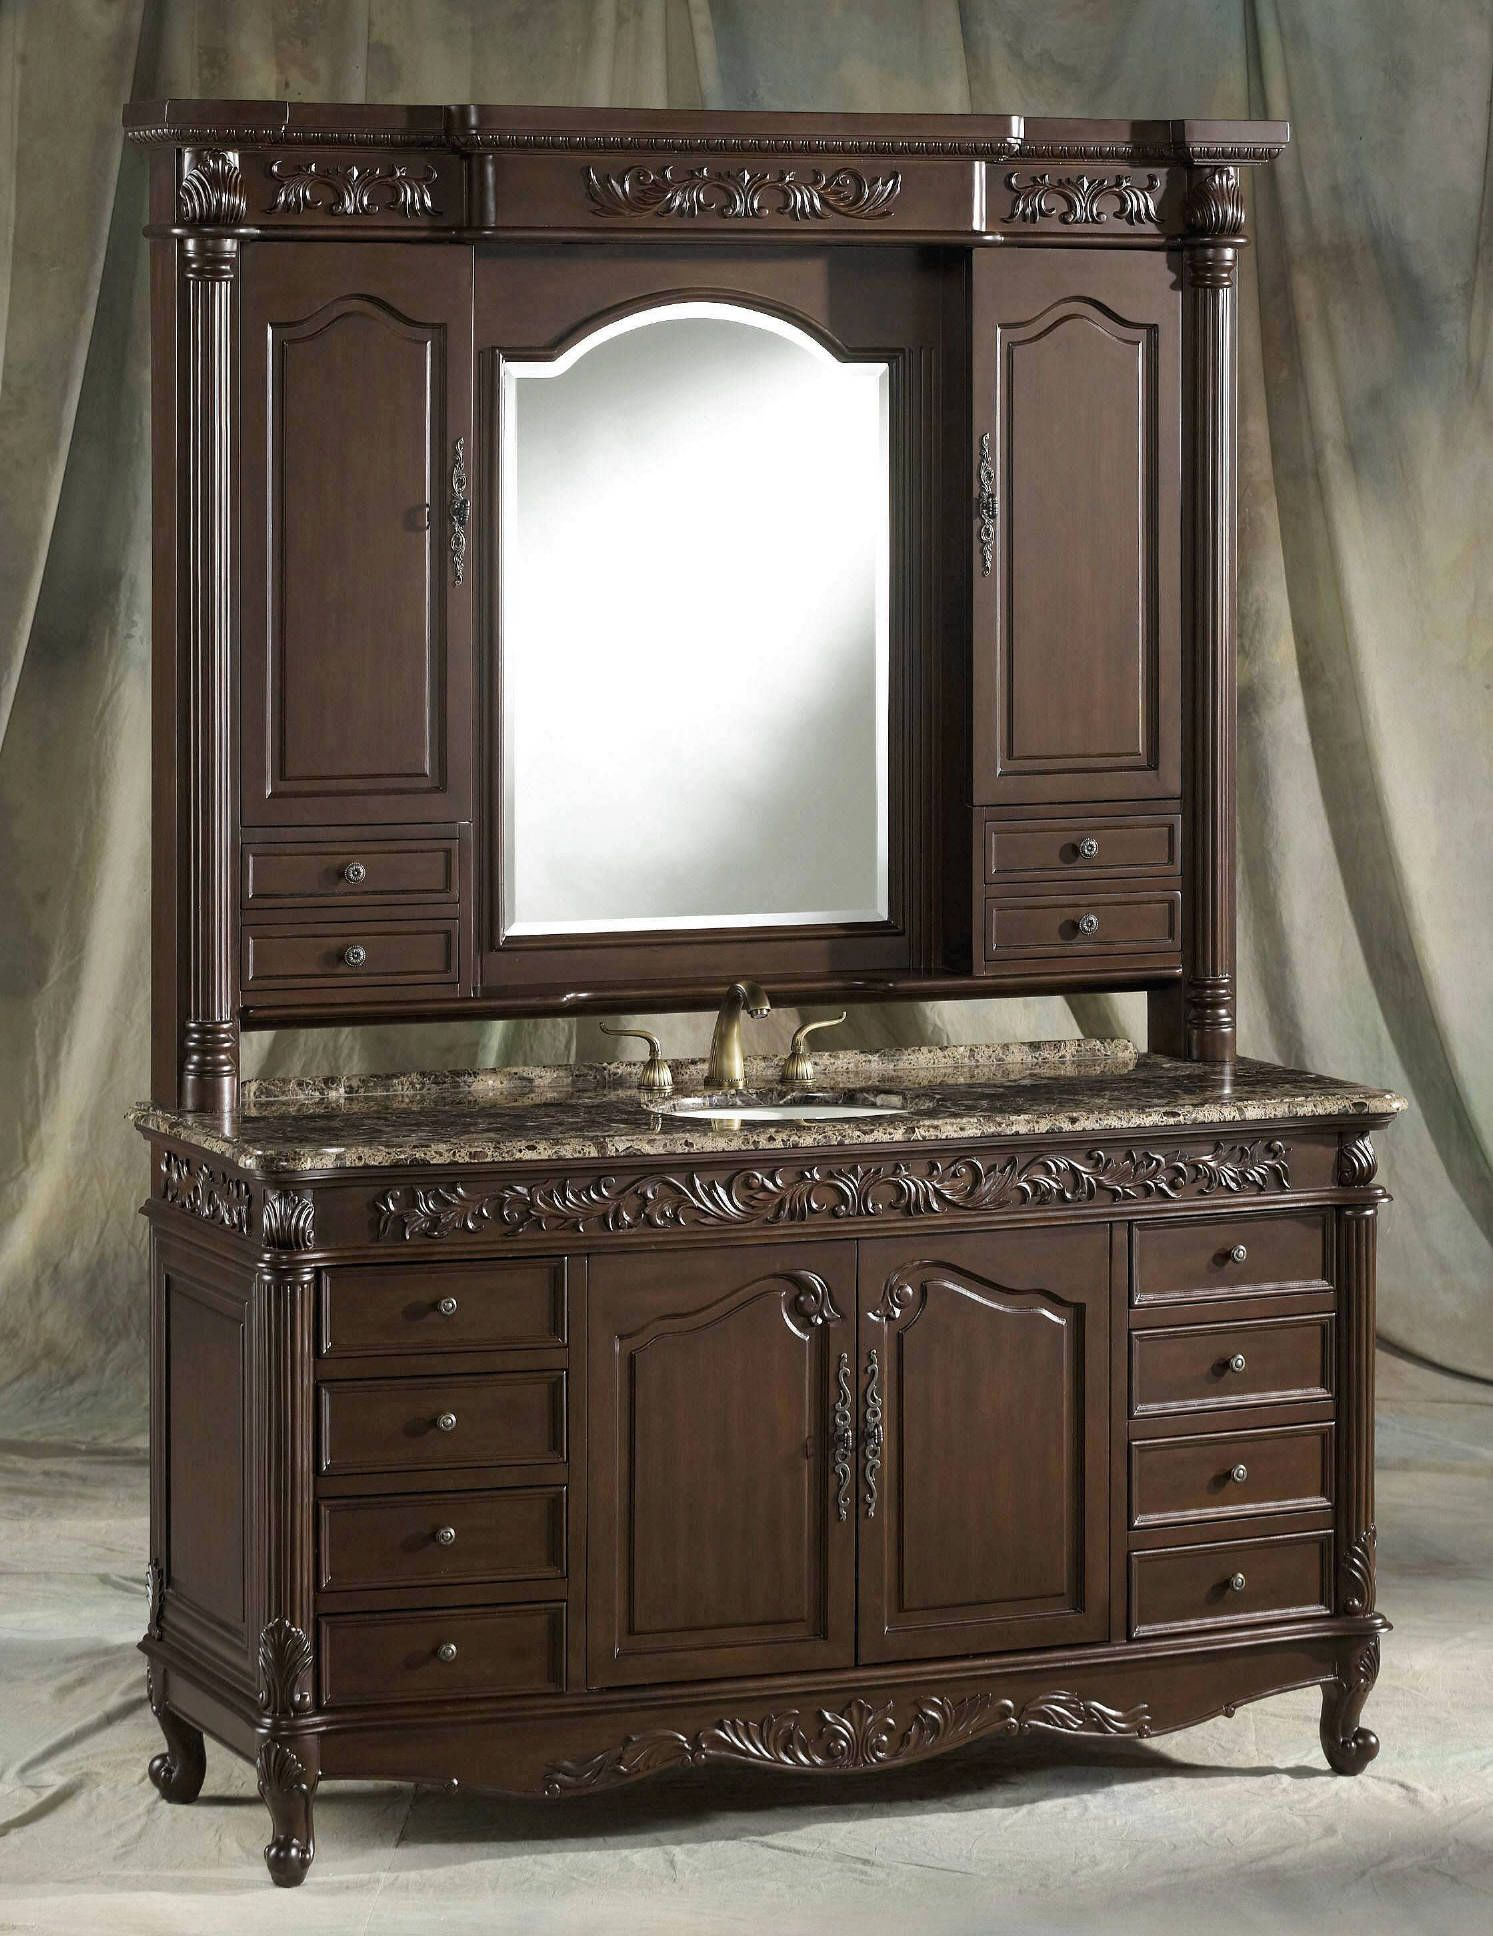 64 Bathroom Vanity Bathroom Vanity Cabinet 2764 Nf 2pcs With Matching Mirrored Hutch